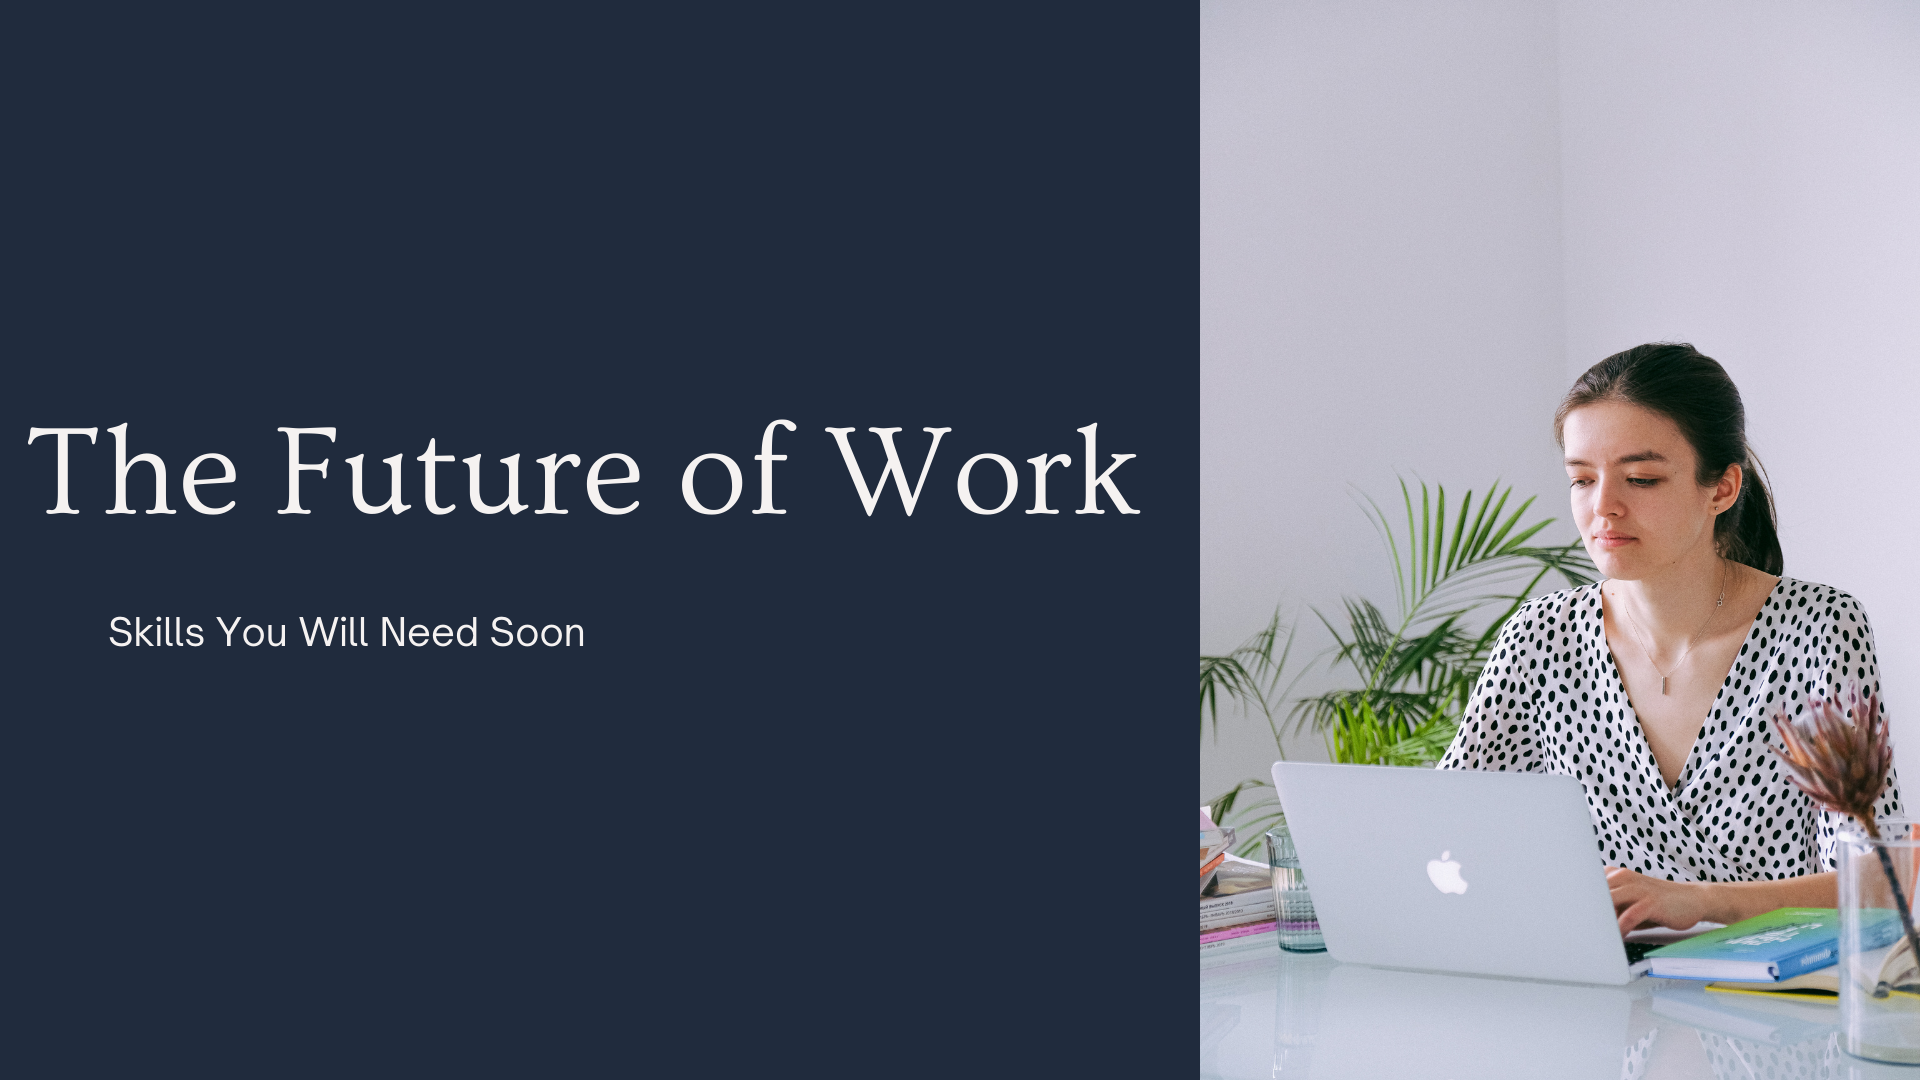 The Future of Work: Skills You Will Need Soon